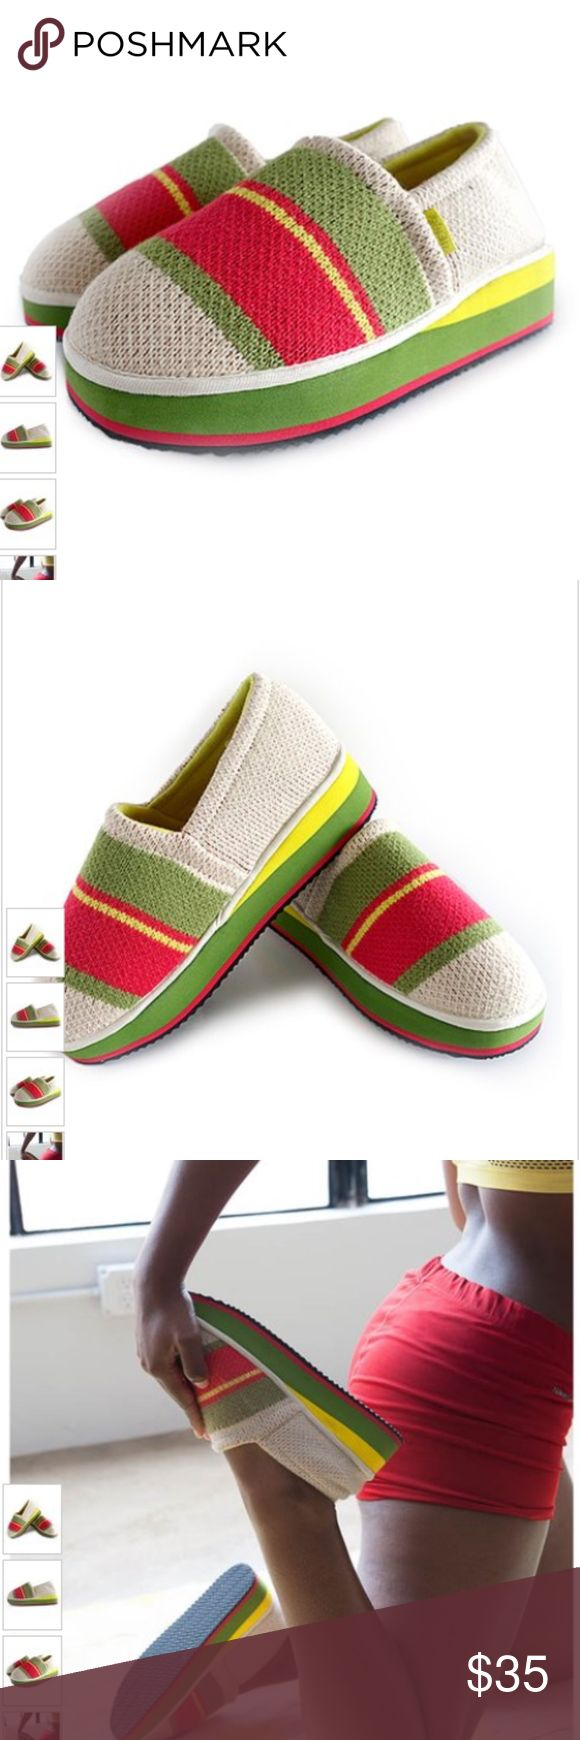 NWT Zenzee Green Hippy Stripe Slipper Size Medium NWT Zenzee Green Hippy Stripe Slipper Size Medium. Comes in original packaging.  Warm up cold toes in this cozy pair of slippers boasting bold complementing hues and a fun design to top off your lounge-worthy ensemble. * Slip-on * Man-made knit upper * Anti-bacterial lining * Cushioned foot bed * Multi-density EVA midsole * Anti-slip rubber sole * Imported Zenzee Shoes Slippers